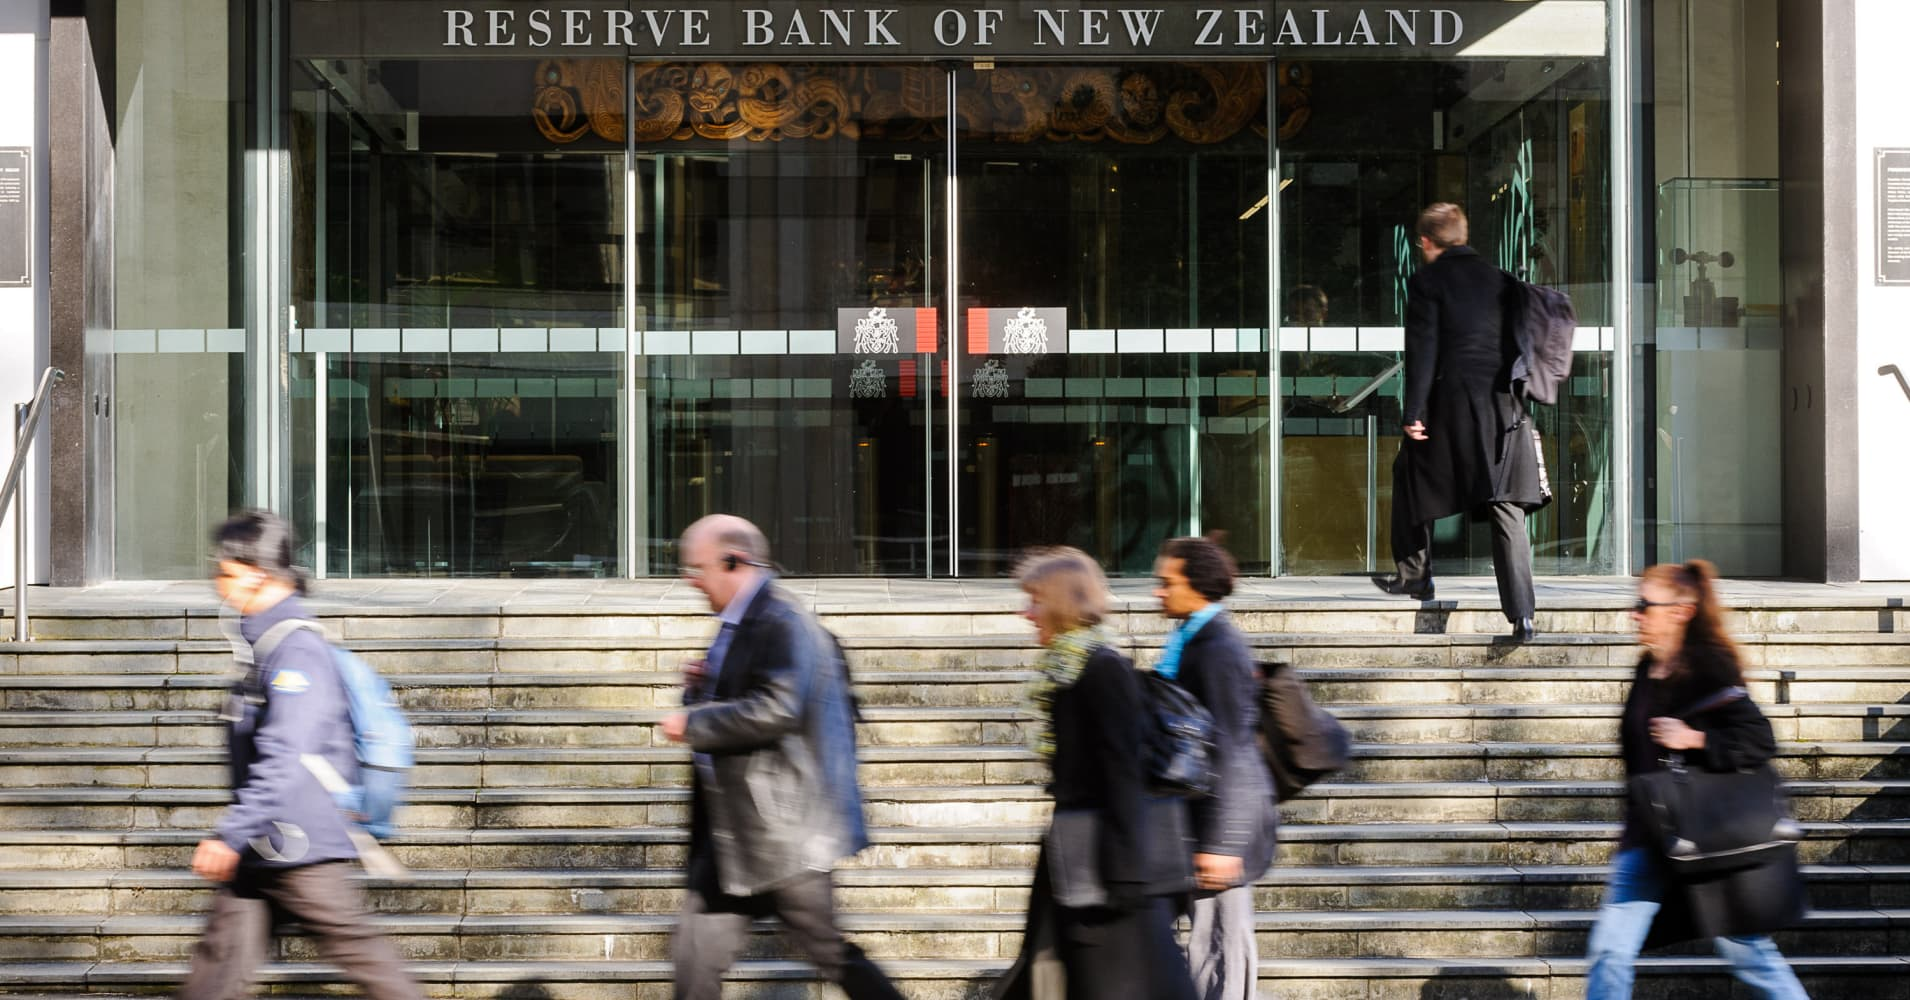 If growth outlook worsens interest rates could be cut further: Reserve Bank of New Zealand